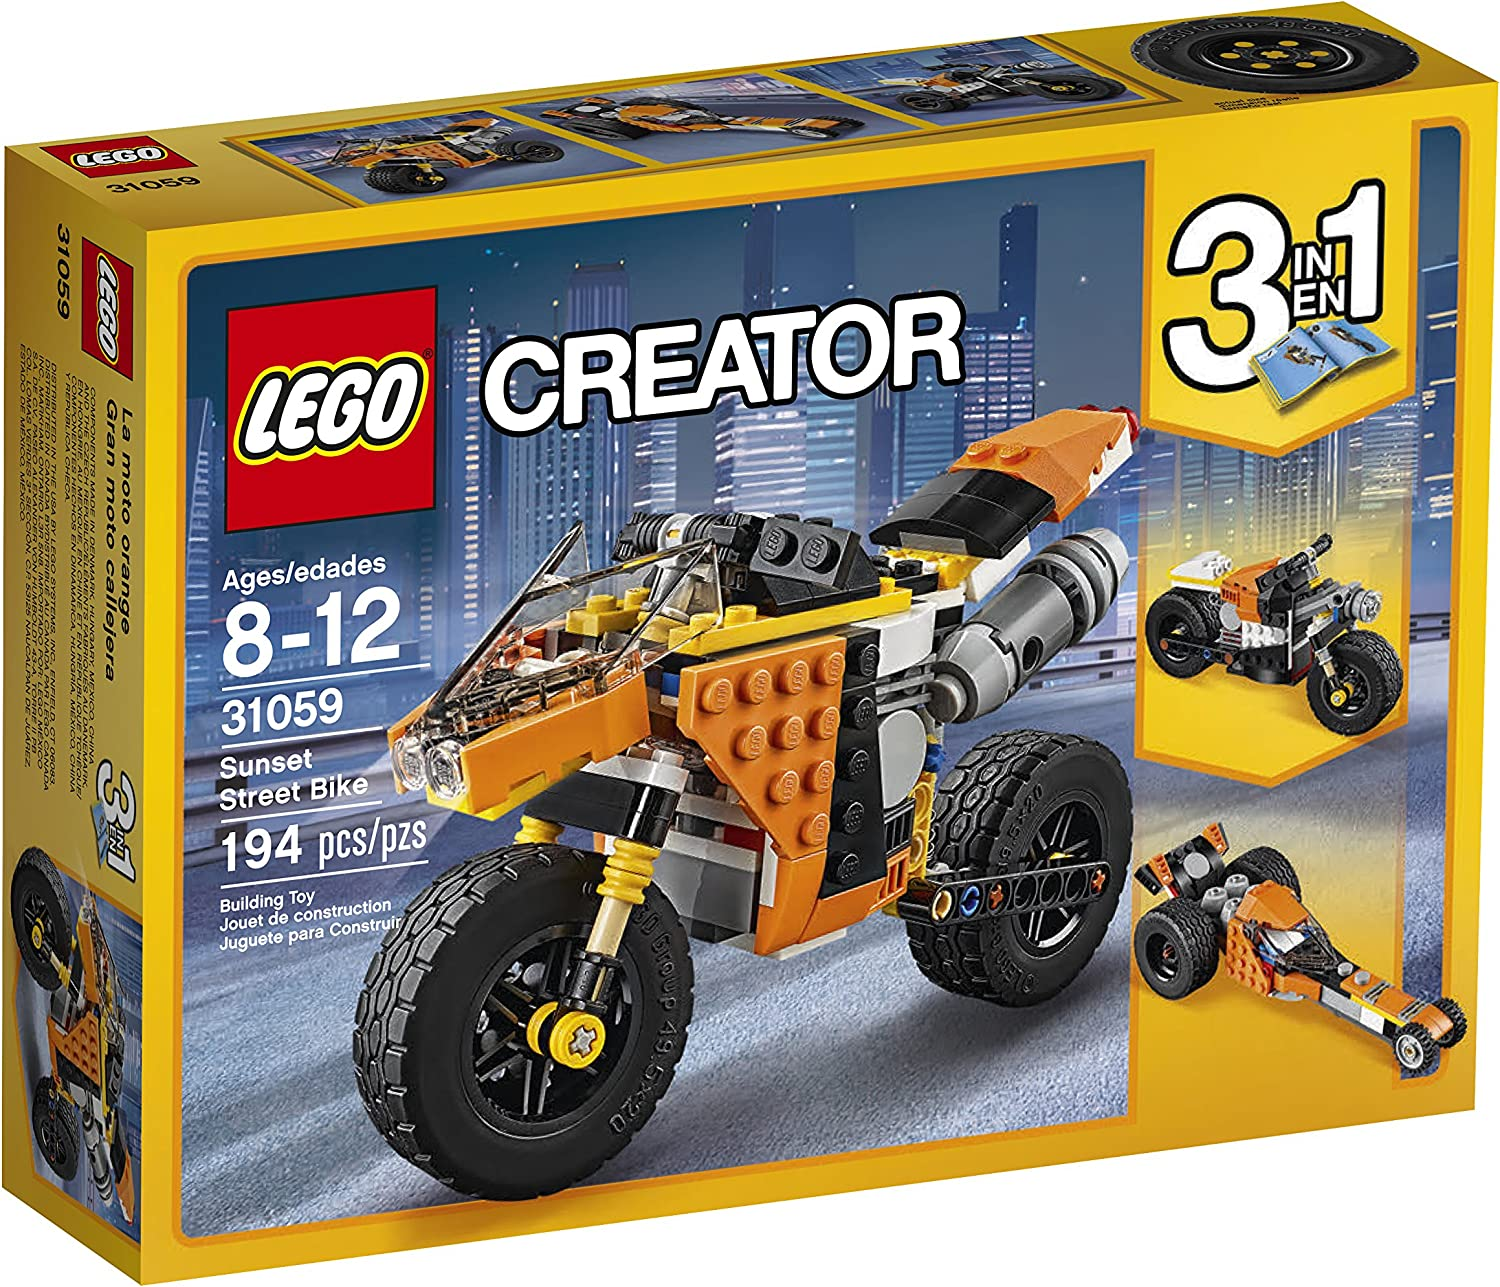 Top 7 Best LEGO Motorcycle Sets Reviews in 2020 7